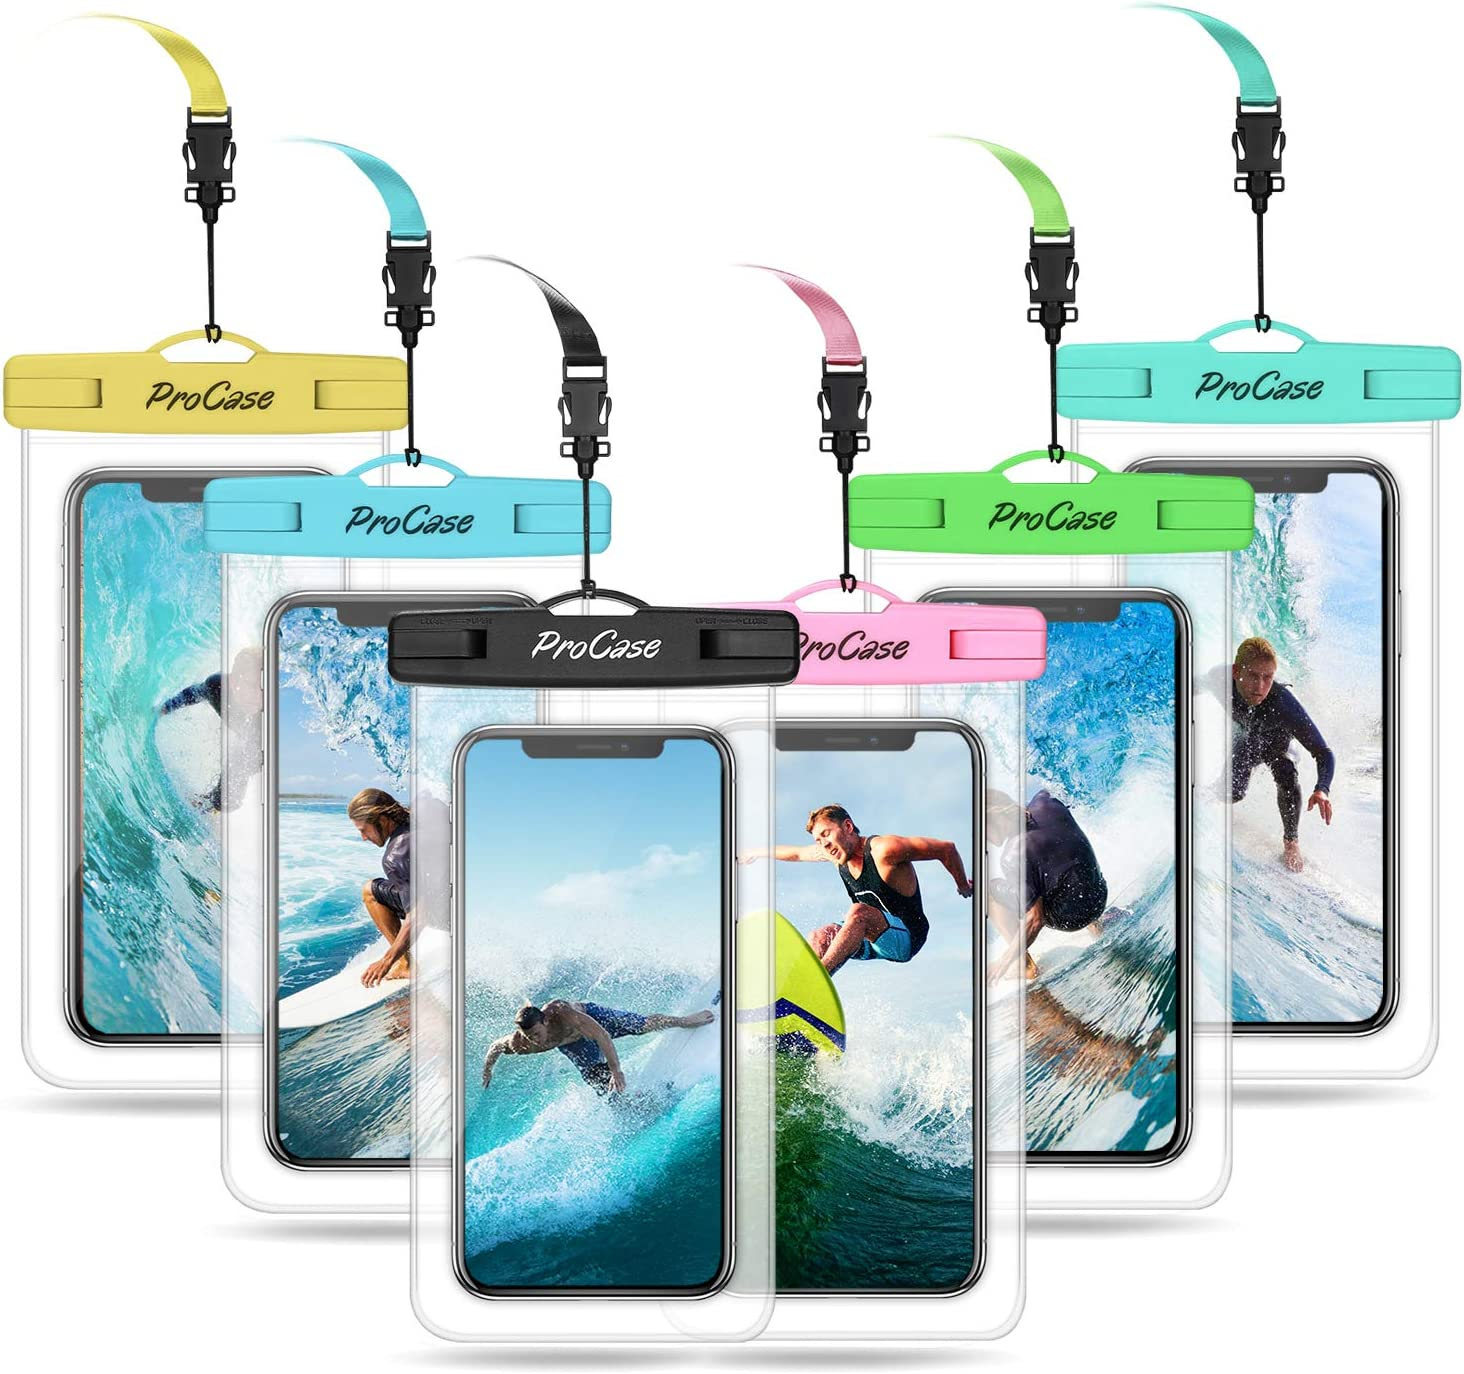 "ProCase Universal Waterproof Pouch Cellphone Dry Bag Underwater Case for iPhone 11 Pro Max Xs Max XR 8 7 SE 2020 Galaxy S20 Ultra up to 6.9"", Waterproof Phone Case for Beach Snorkeling -6 Pack"